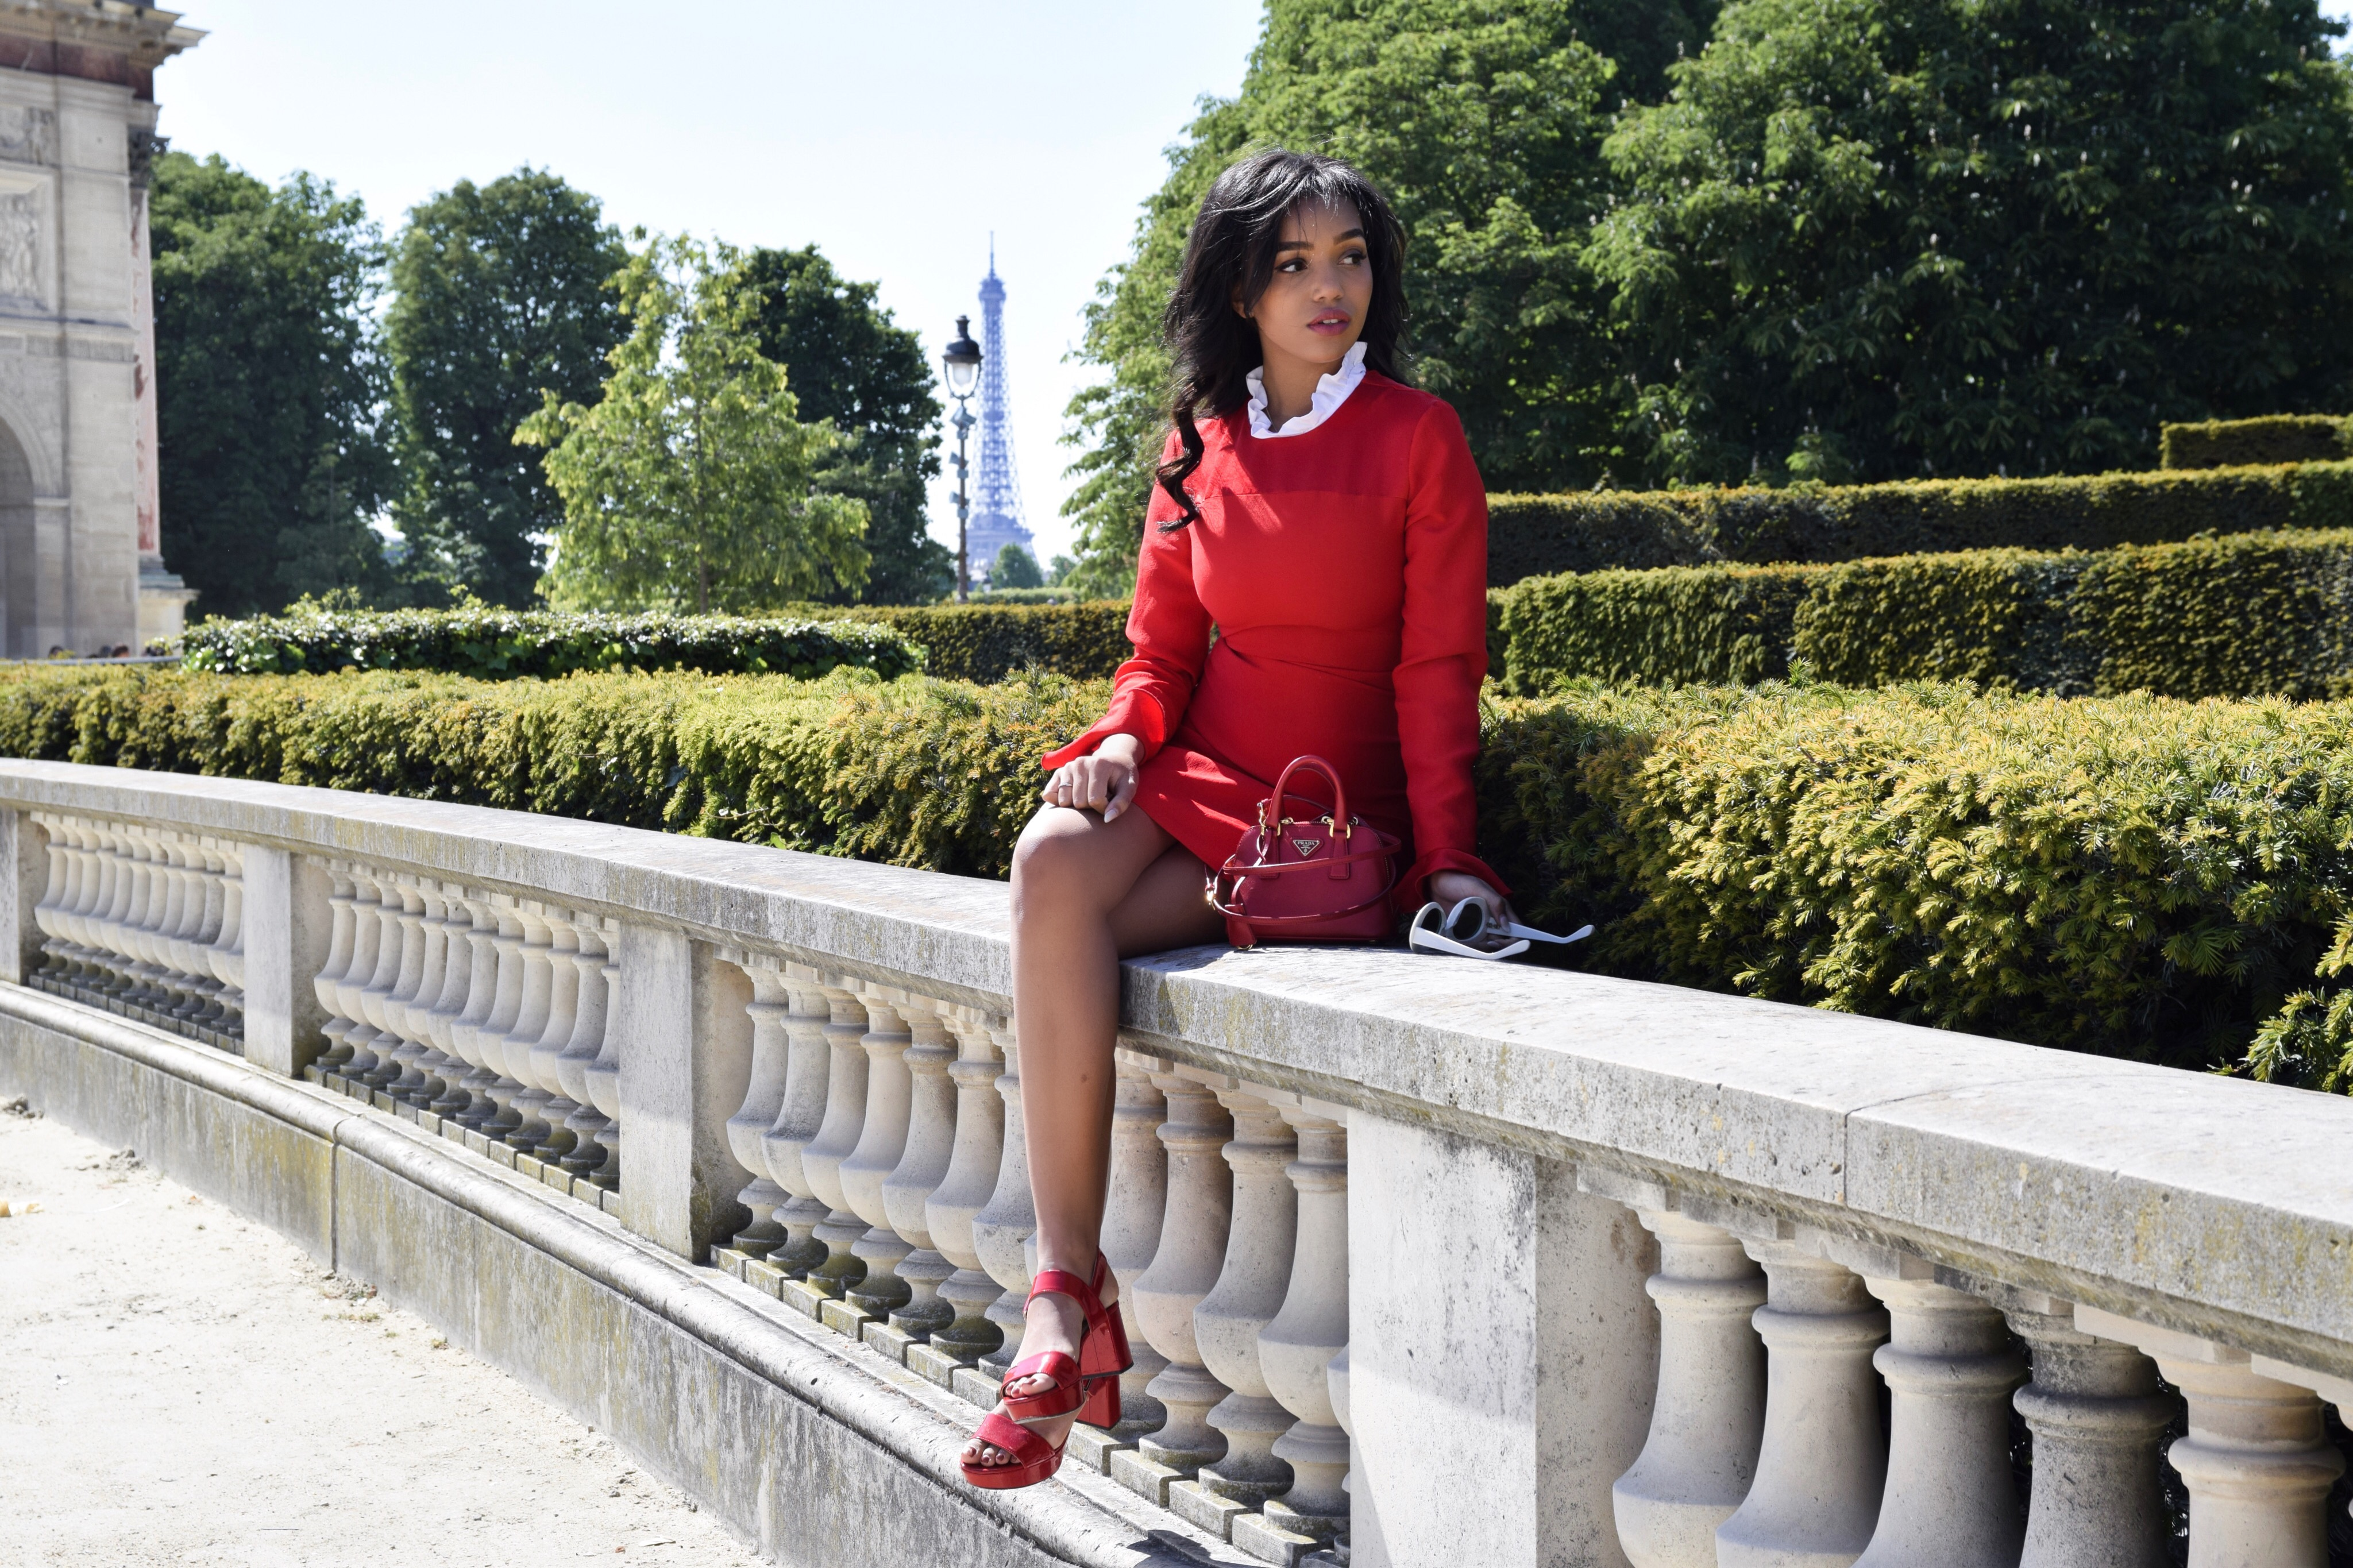 ROUGE // Paris, Palais Royal Instagram Spot Aesthetic // Sandro Red Collar Dress // Red Prada Patent Leather Sandals // Red Prada Crossbody Bag // Acne White Mustang Sunglasses // J.W. Anderson Houdstooth Cropped Jacket // Paris Travel Diary // Los Angeles Fashion Blogger Daphne Blunt: To Style, With Love